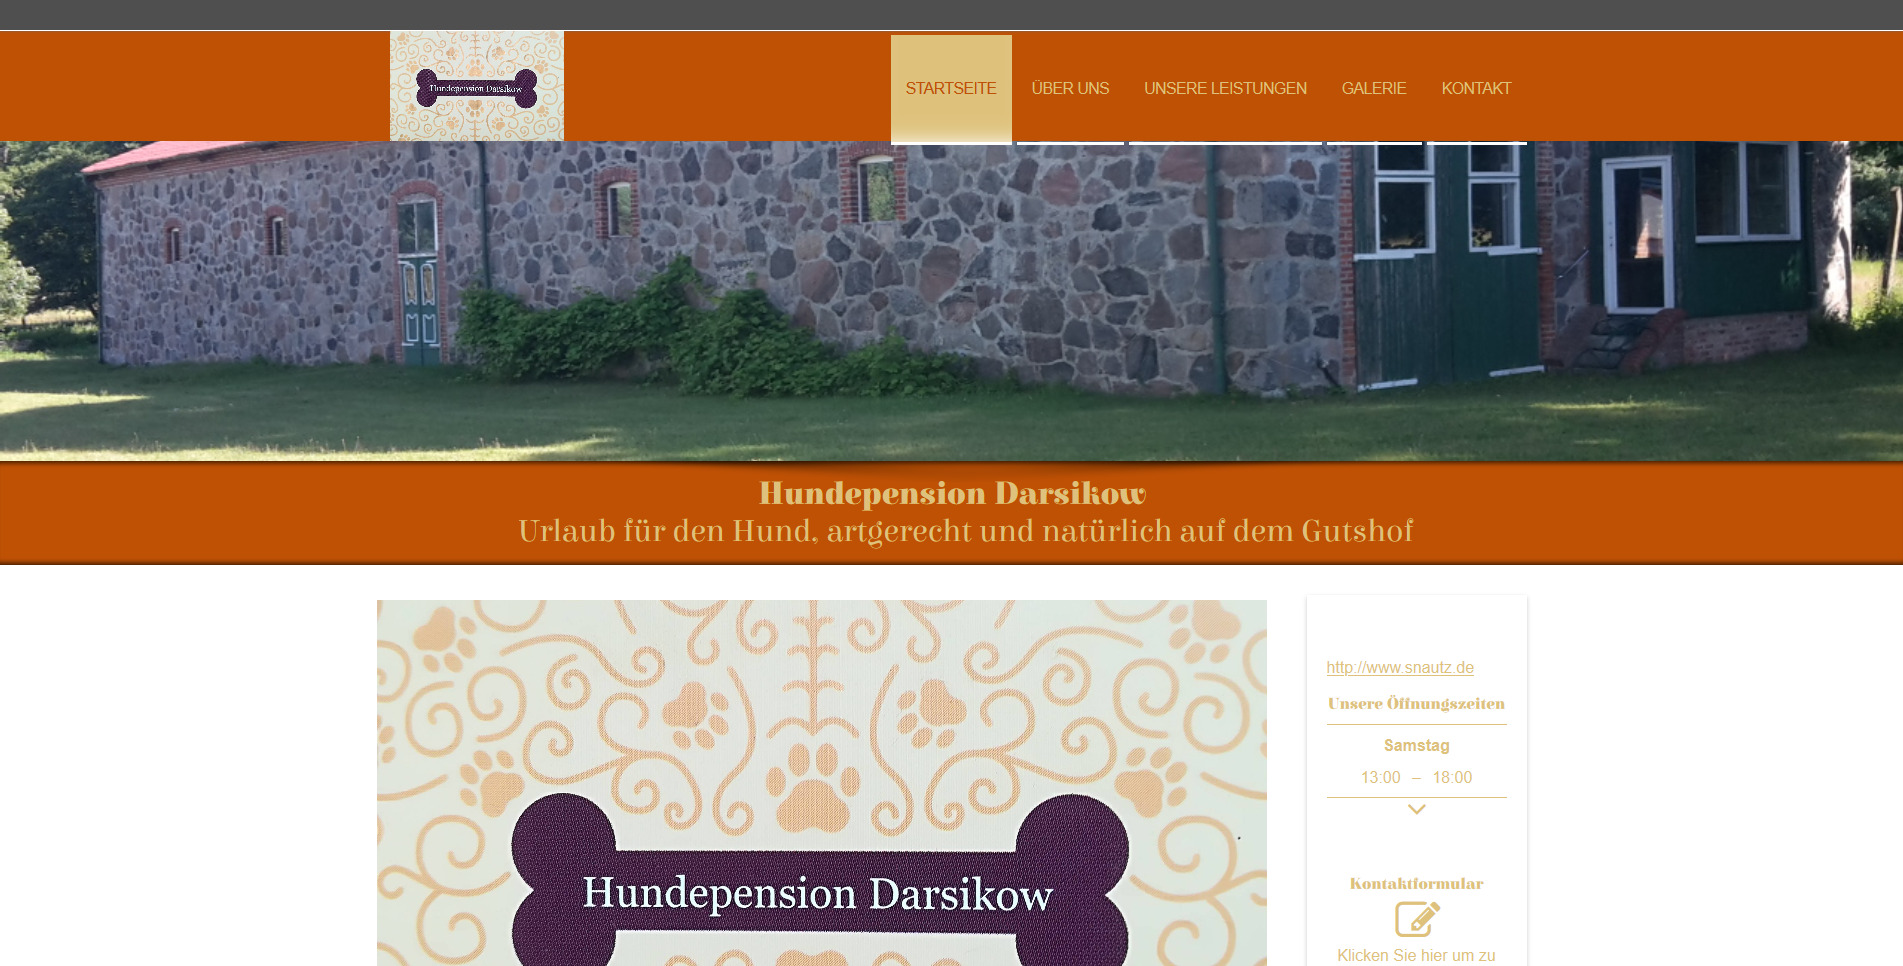 Hundepension Darsikow